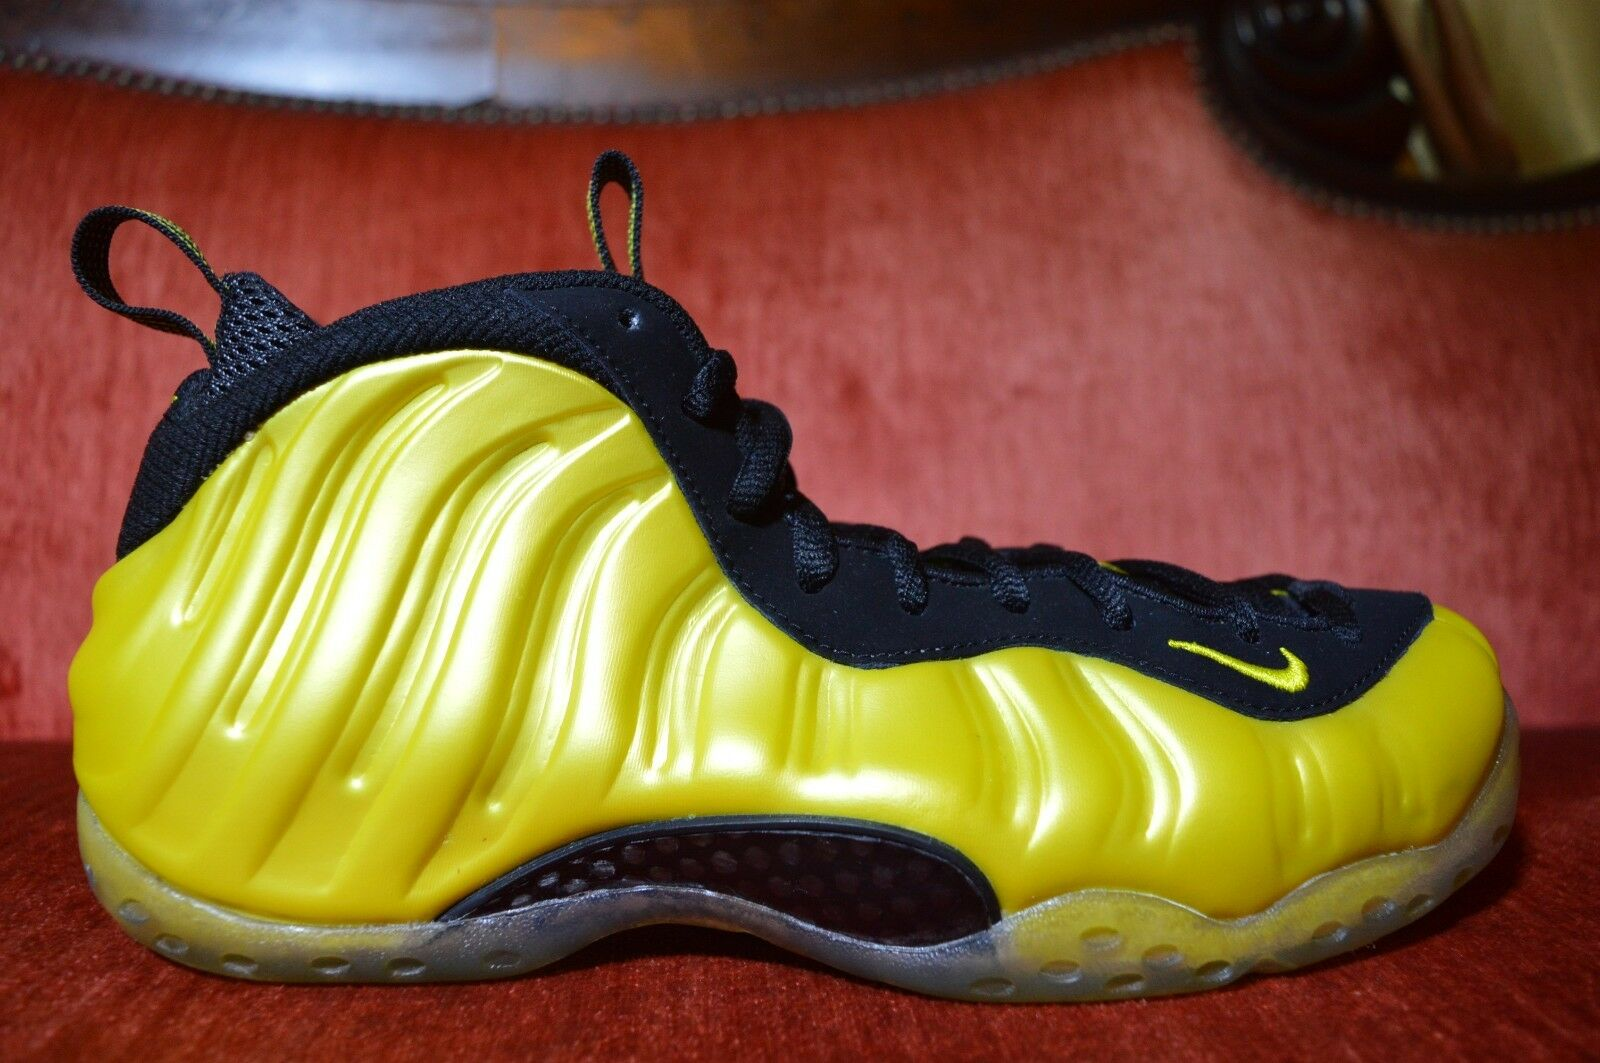 CLEAN NIKE AIR FOAMPOSITE ONE ELECTROLIME GOLDEN STATE 314996-330 SIZE 8.5 Special limited time